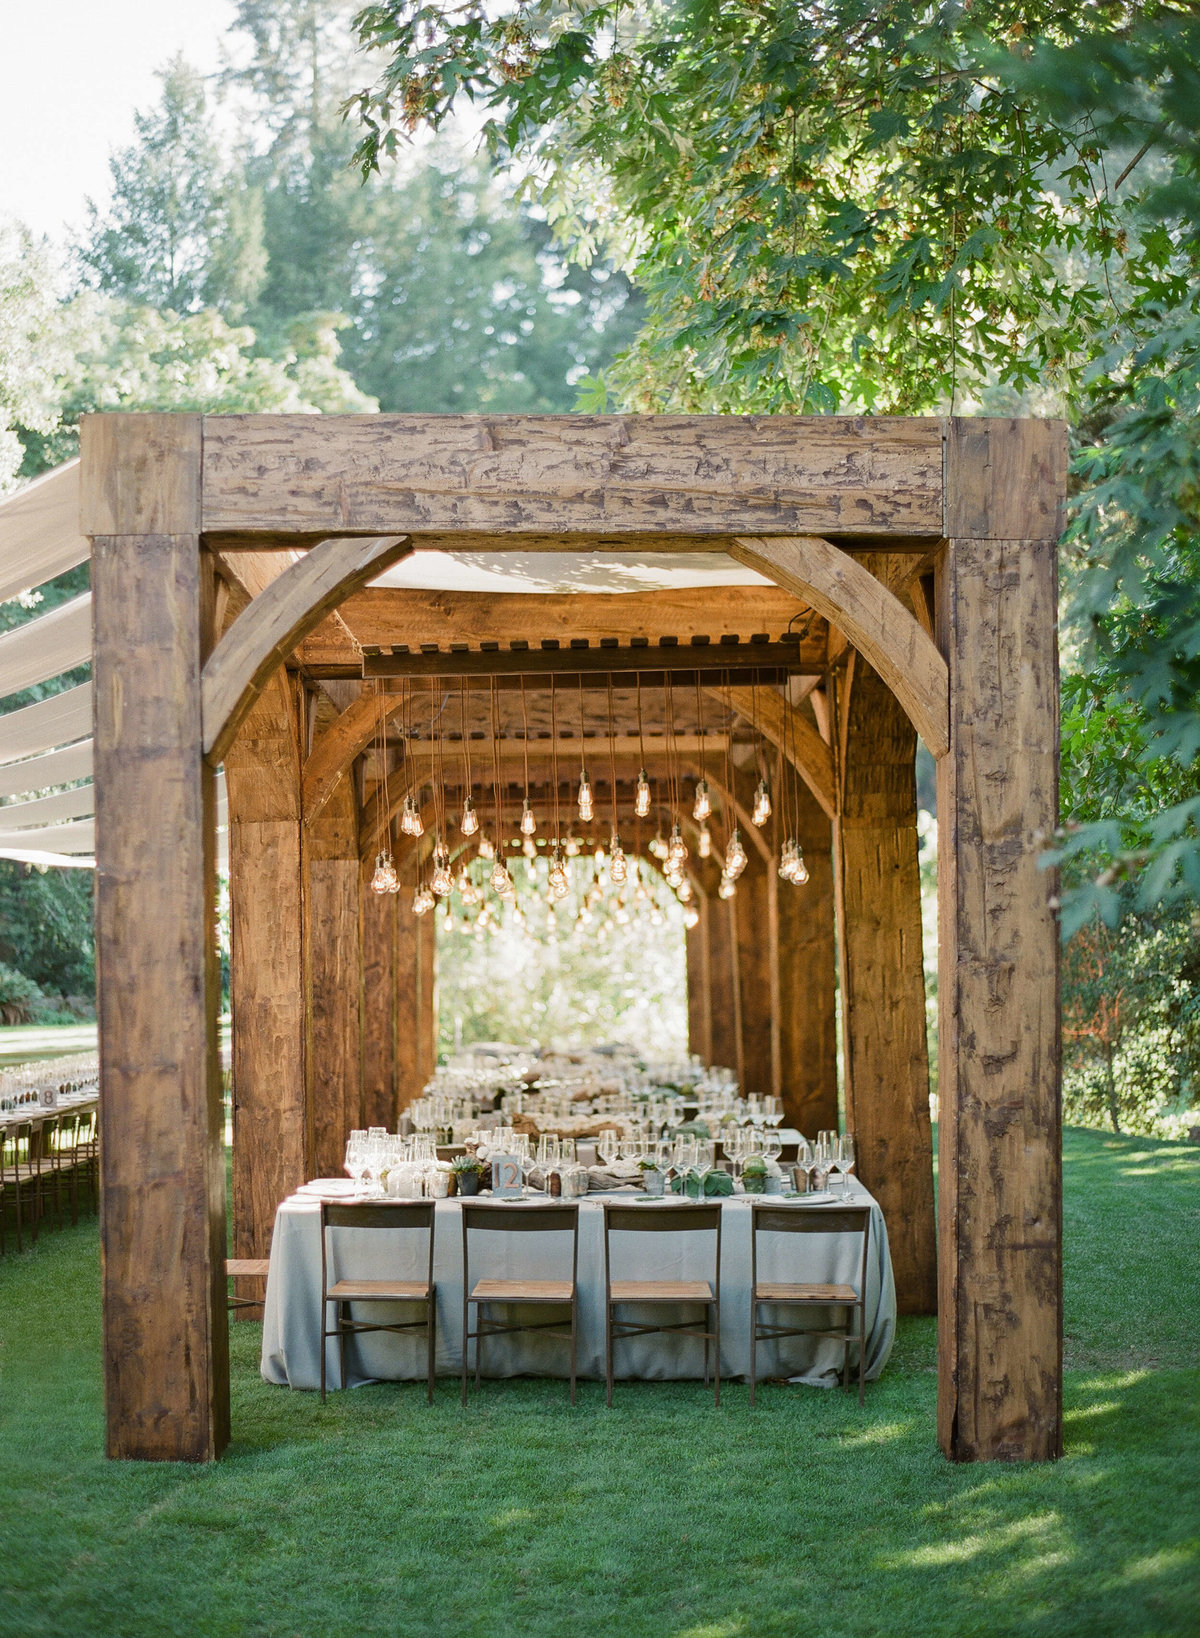 54-KTMerry-wedding-reception-wooden-arbor-NapaValley